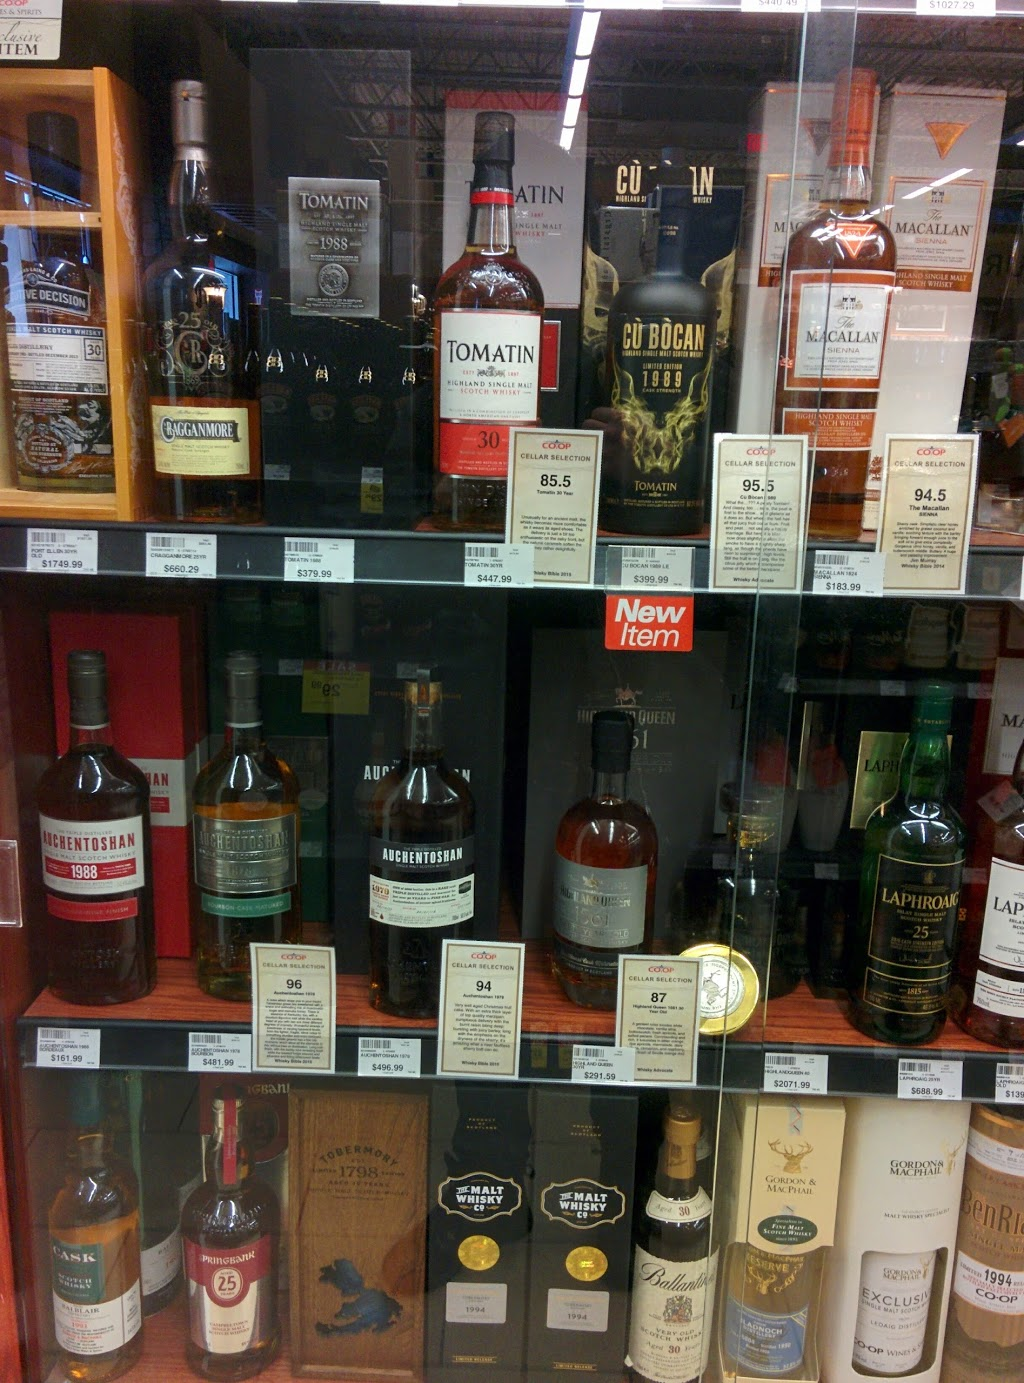 Mount Pleasant Co-op Liquor Store | store | 336 16 Ave NW, Calgary, AB T2M 0H6, Canada | 4032994268 OR +1 403-299-4268